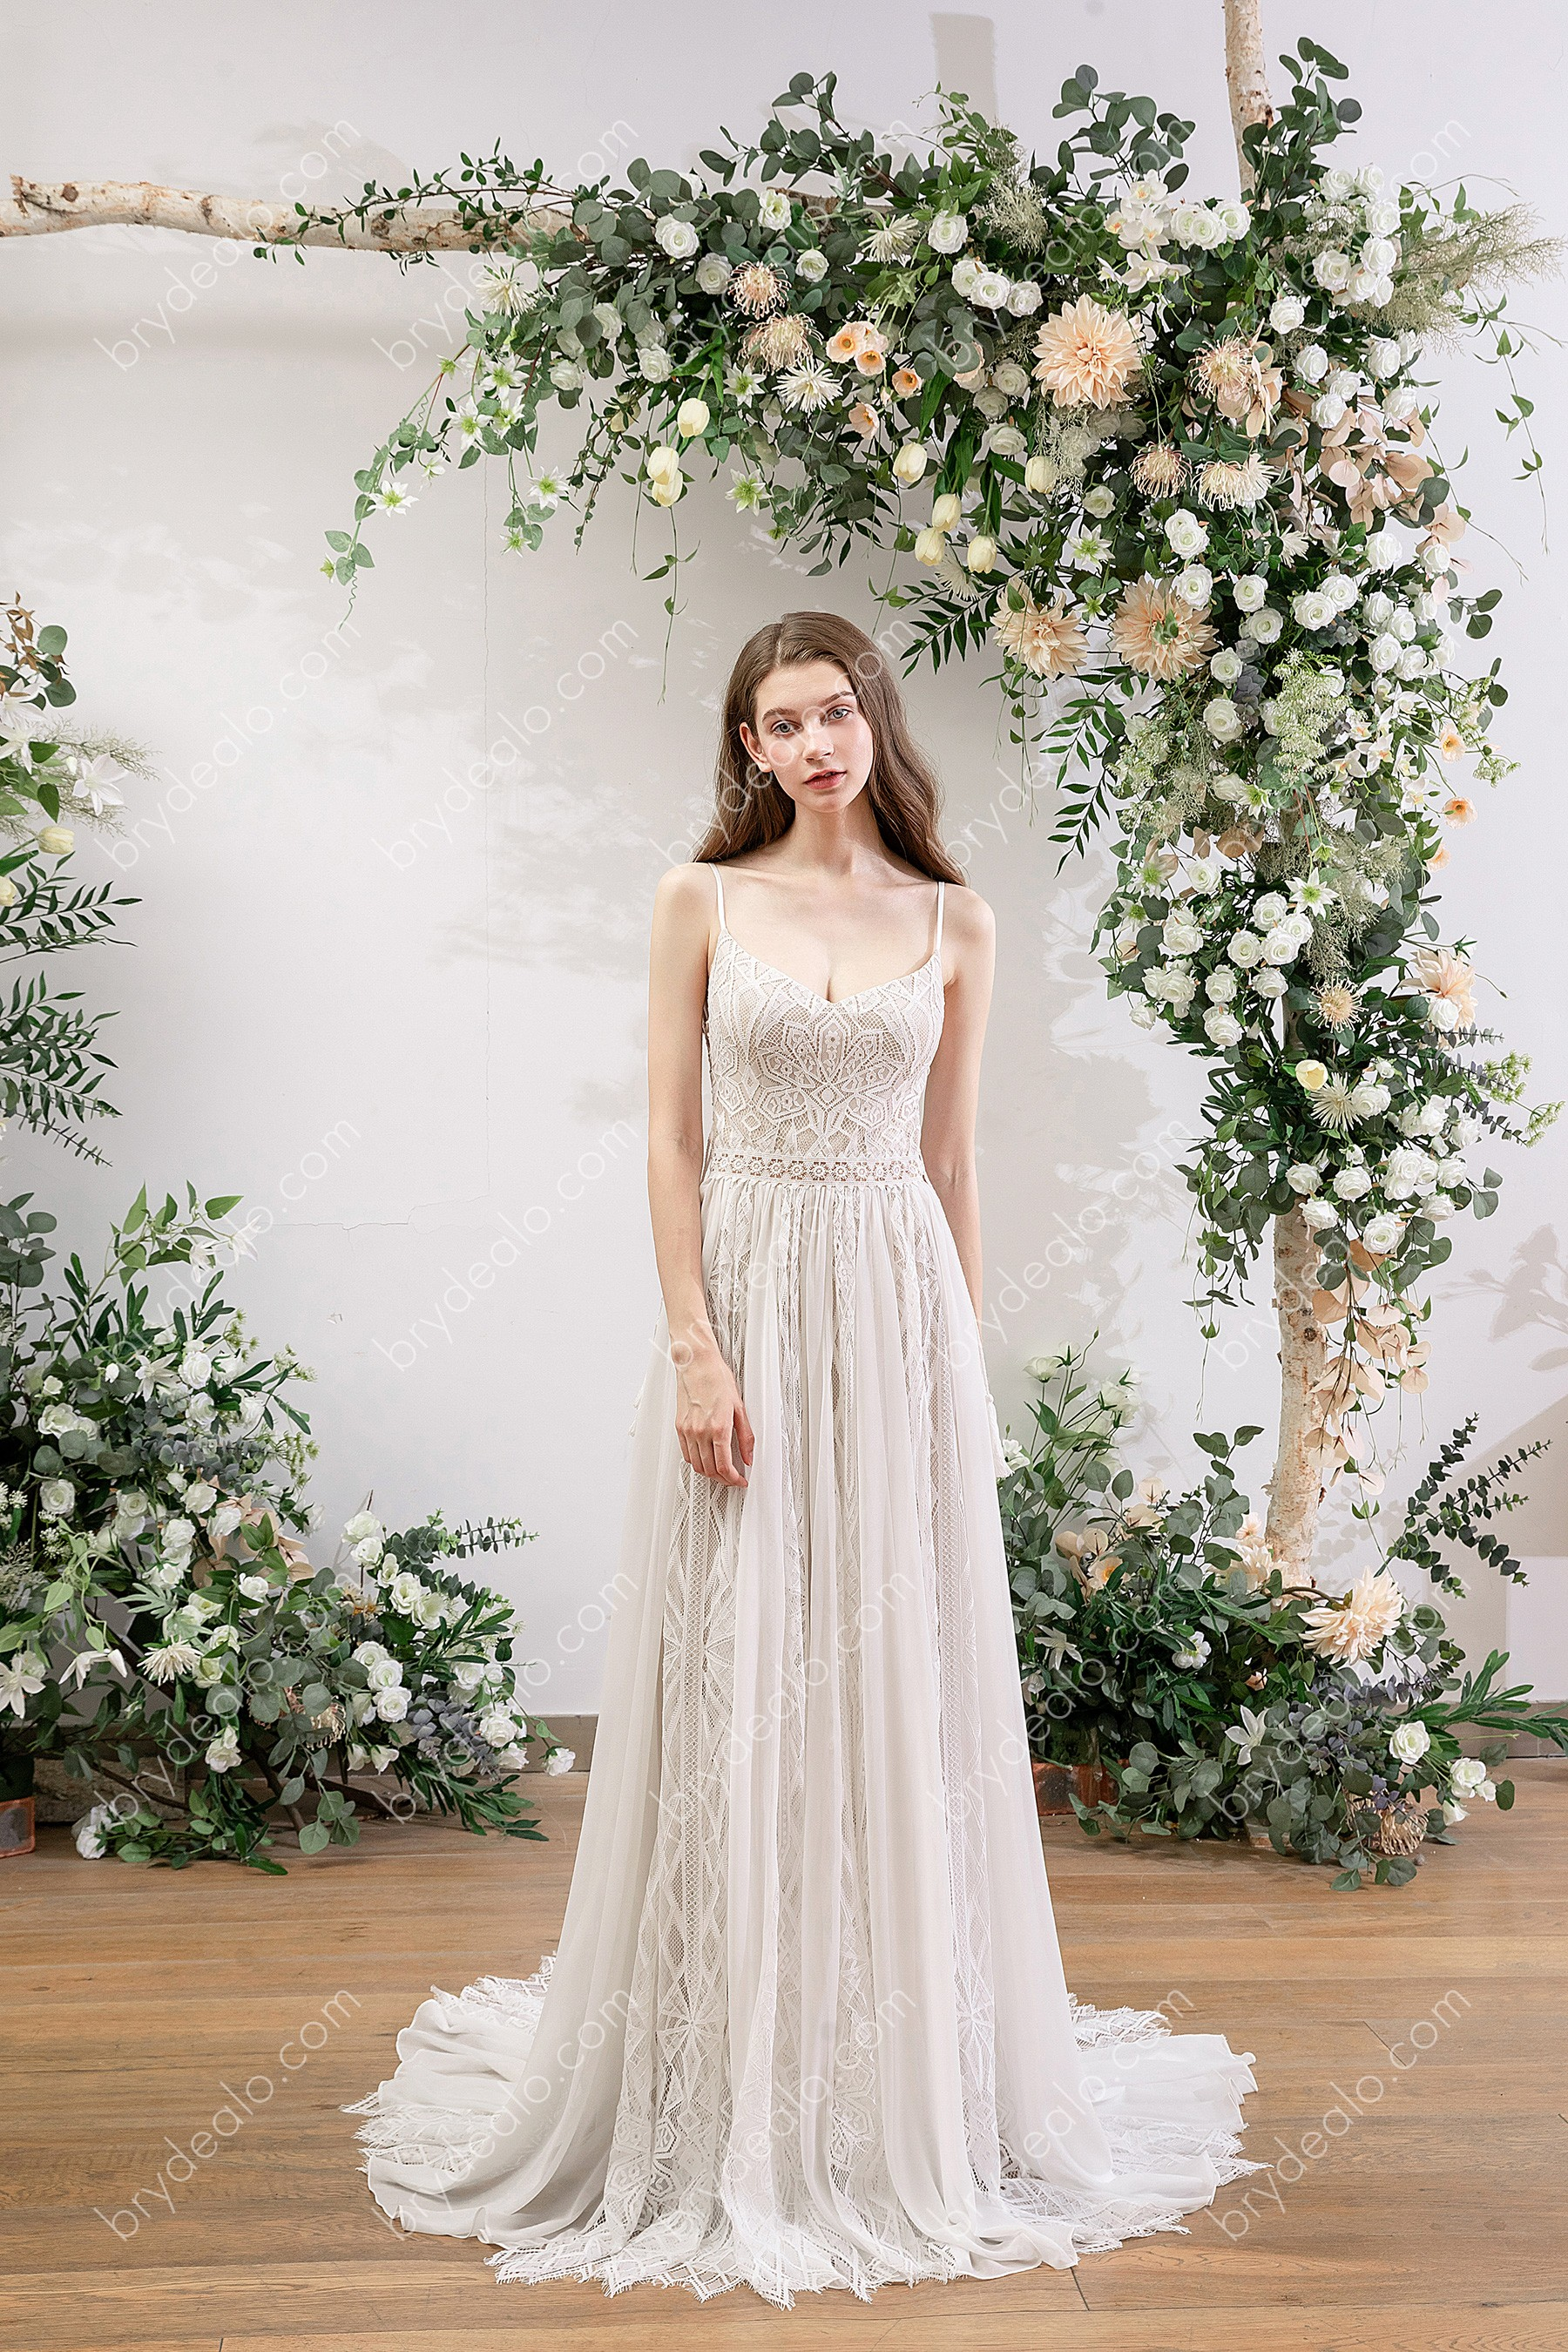 Flowy Spaghetti Strap Lace Boho Wedding Dress Brydealo